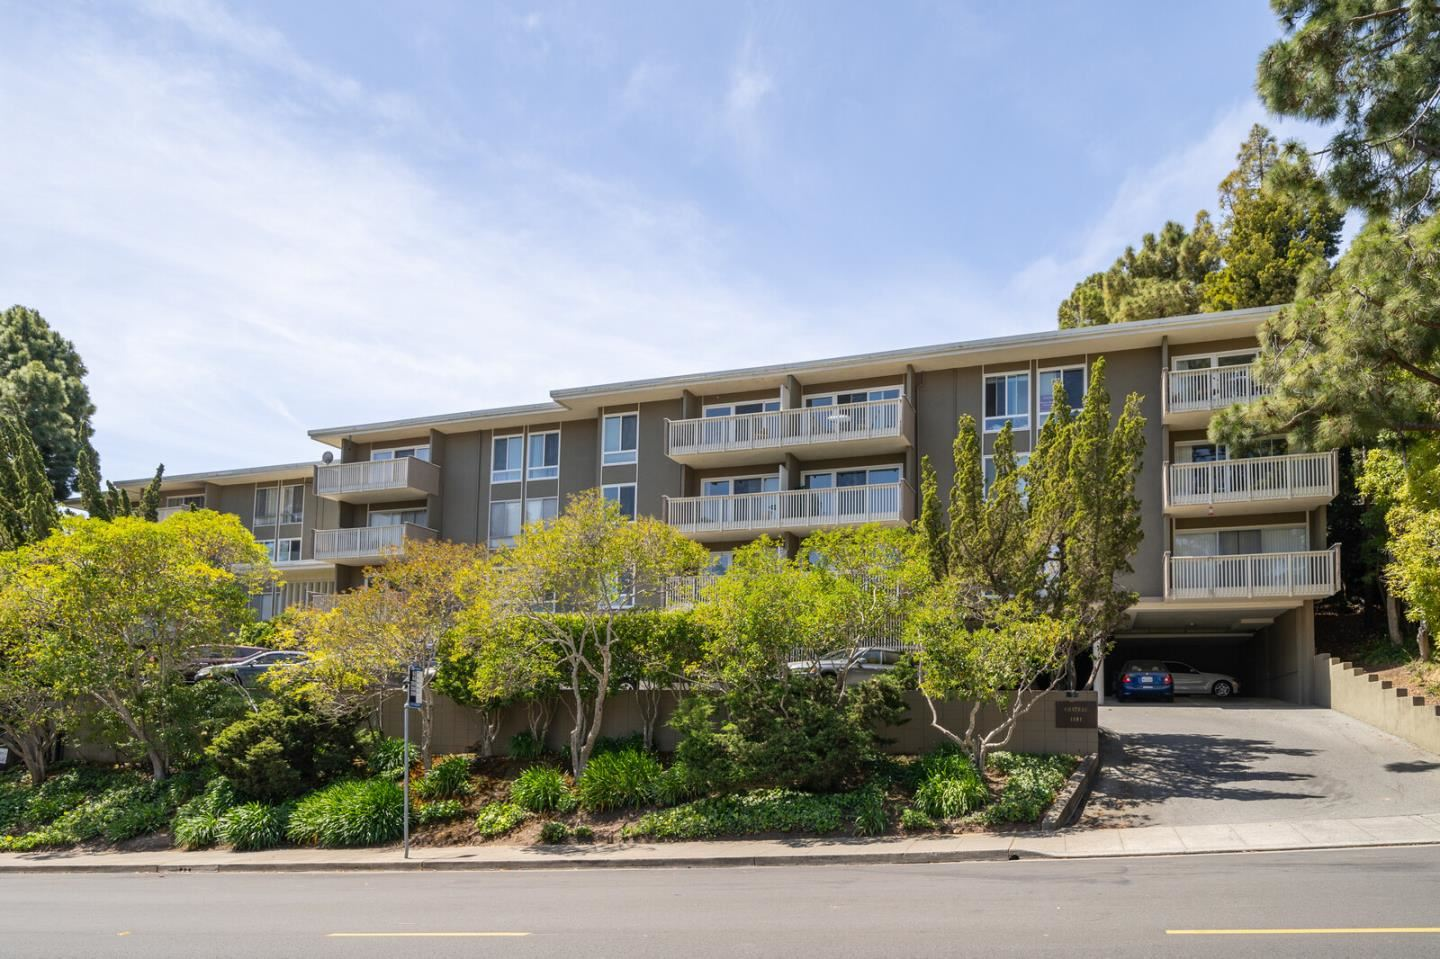 Photo for 1101 Continentals Way #306, BELMONT, CA 94002 (MLS # ML81844111)